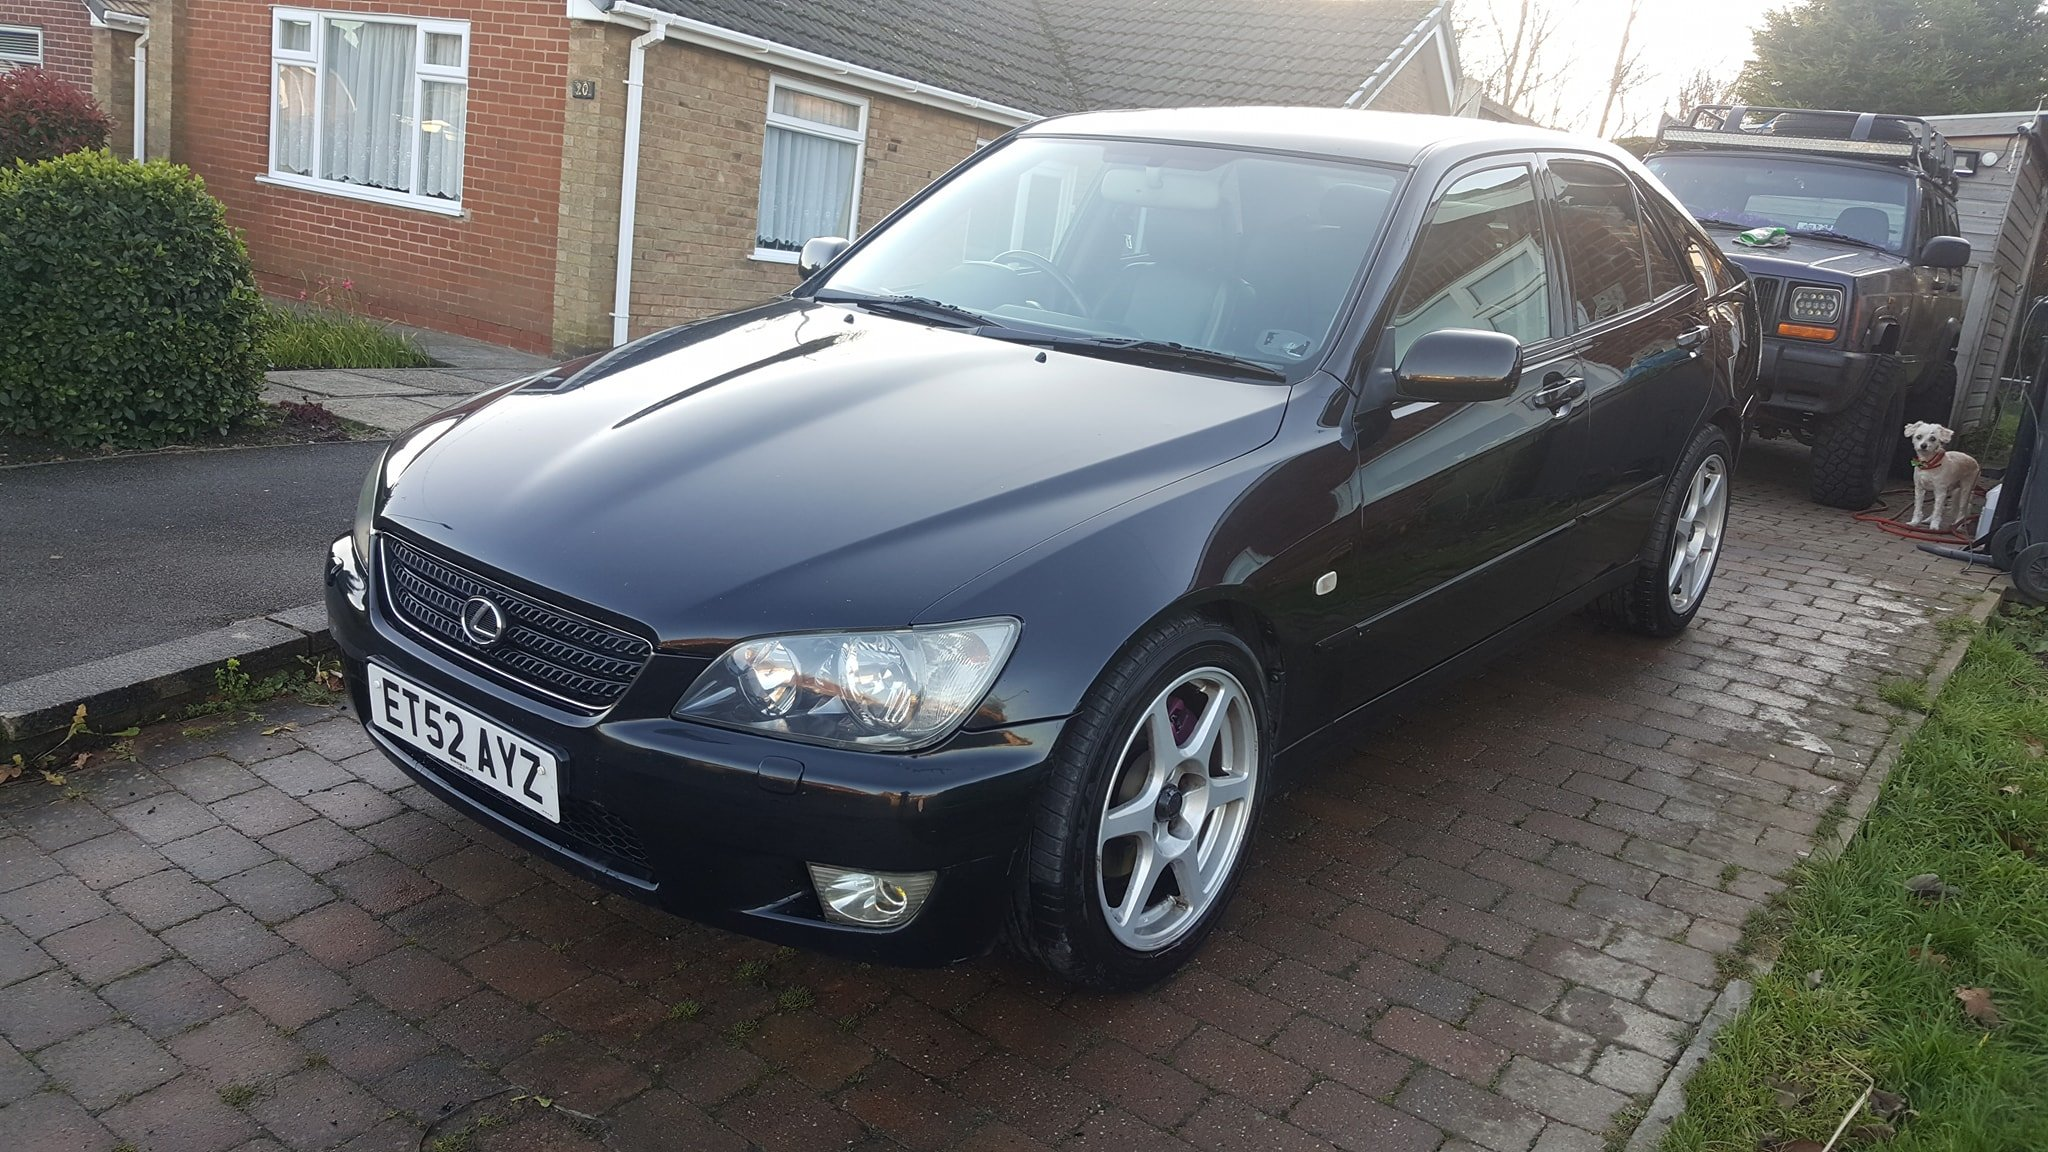 2002 lexus is300 100k miles in black 12 months MOT For Sale (picture 1 of 6)